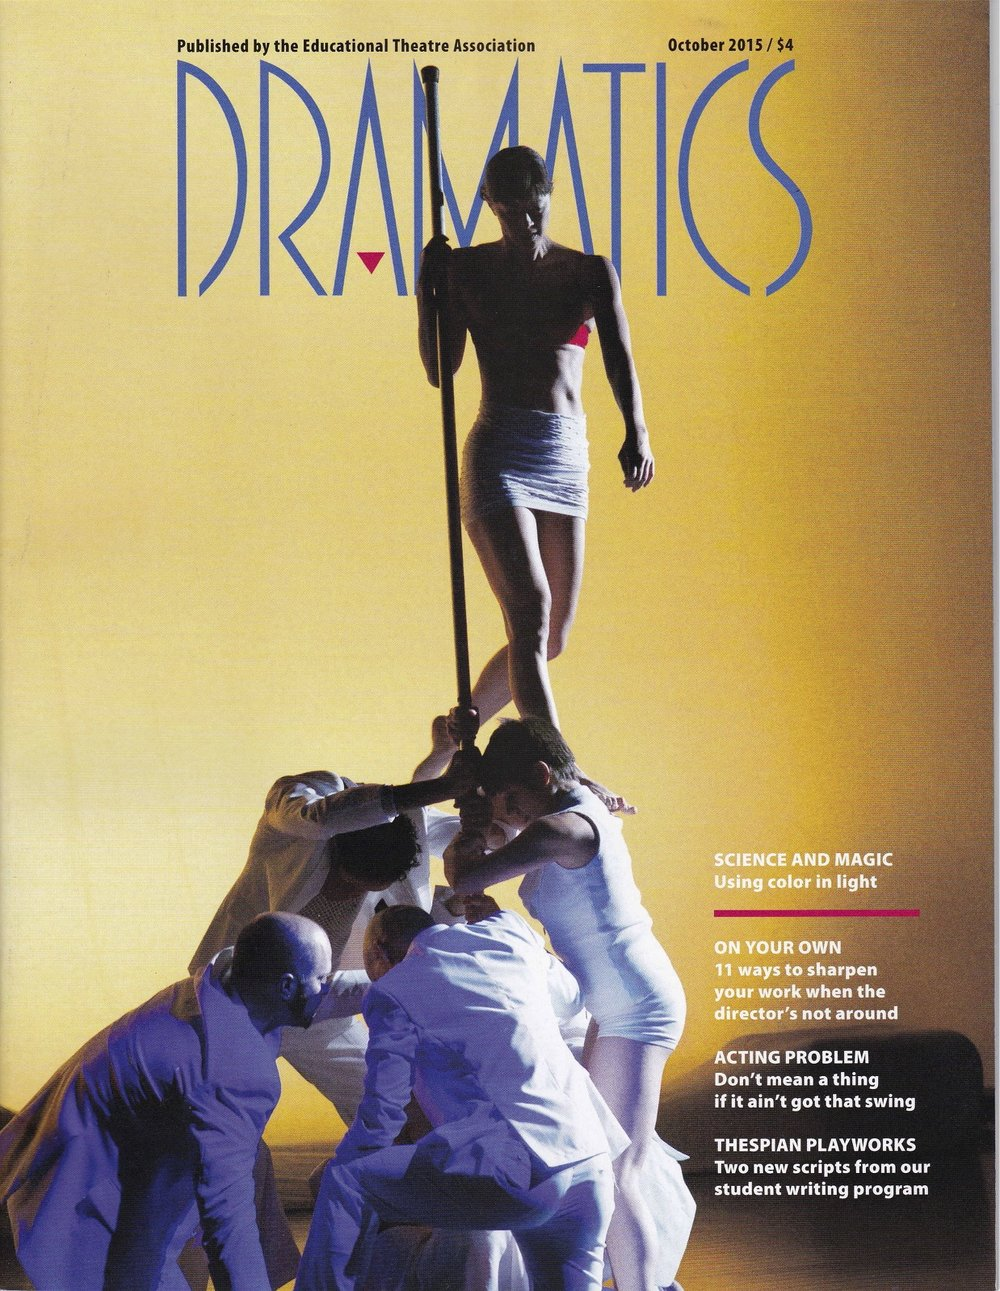 Dramatics Magazine  - My article on lighting and color was the cover story for the October 2015 issue.Click here to read.